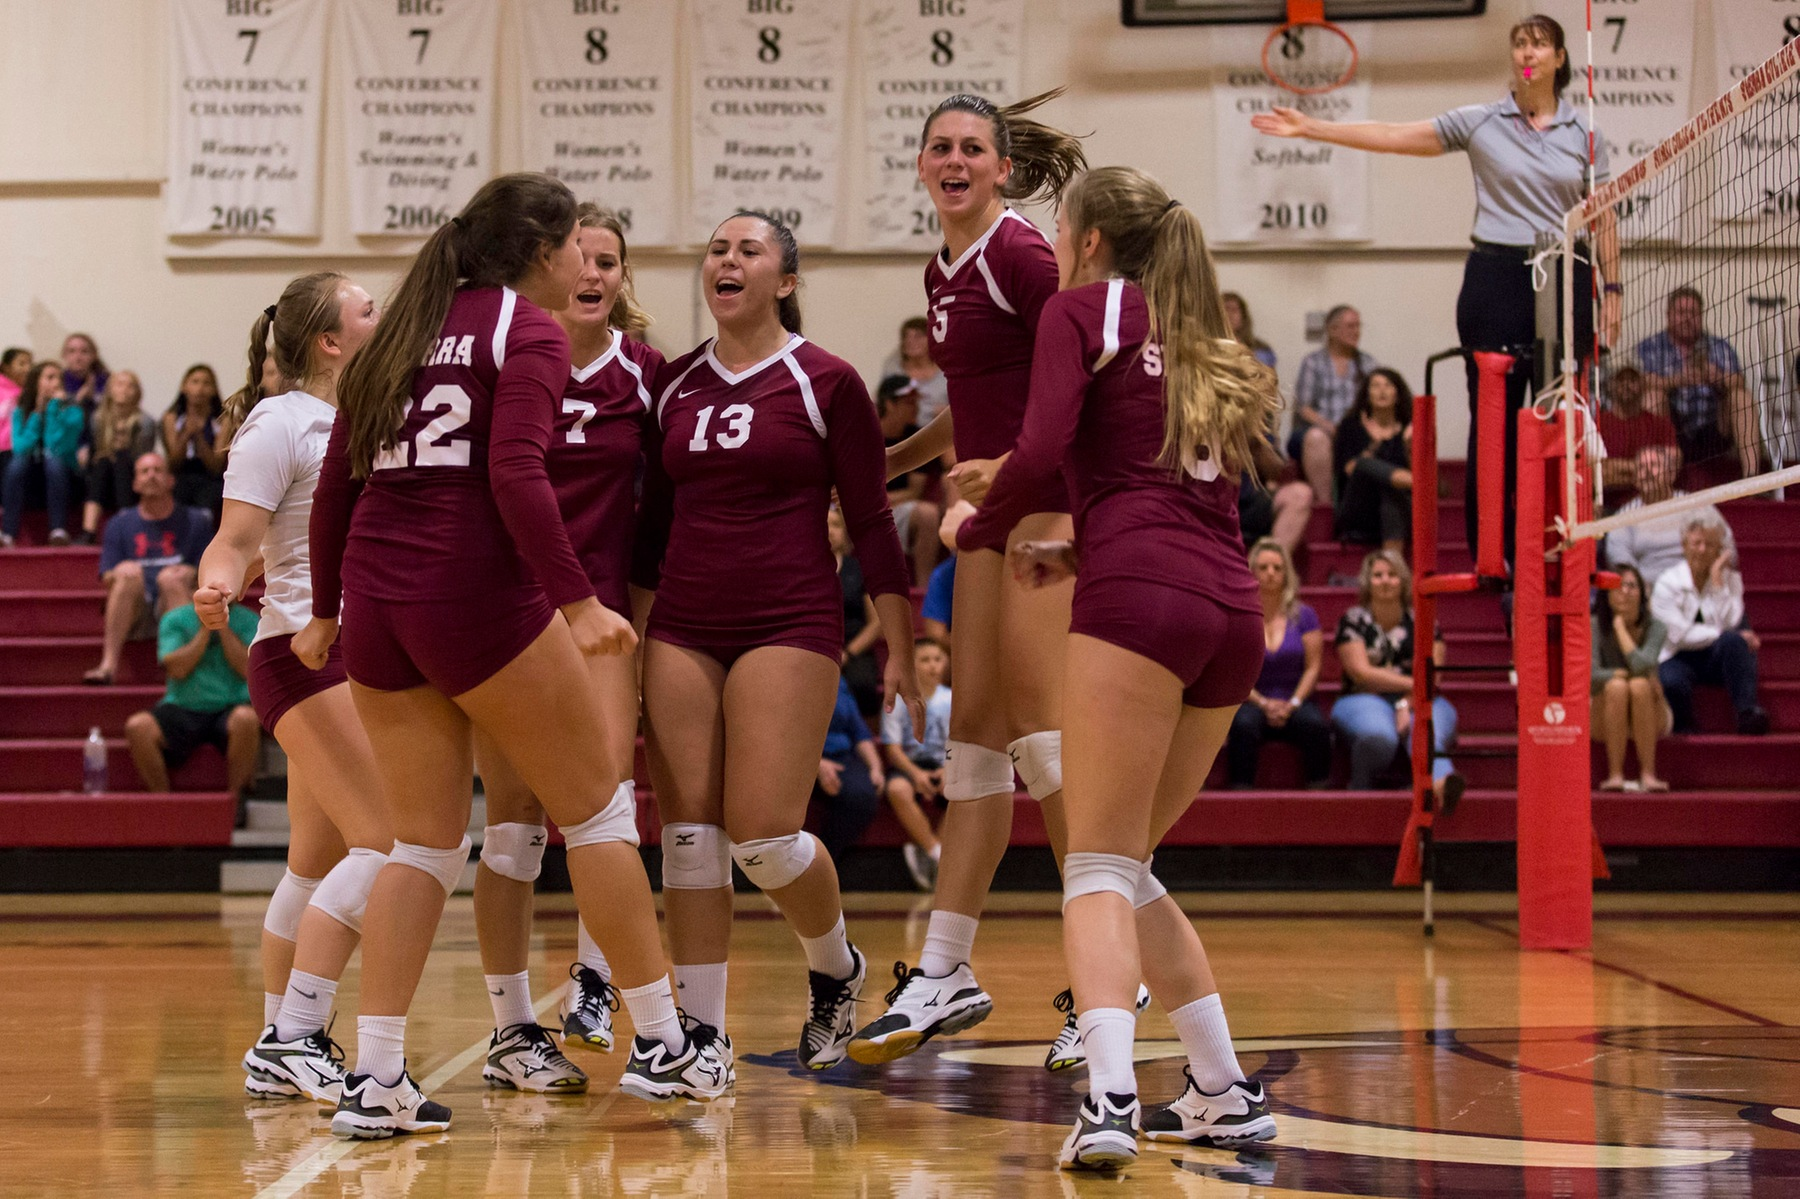 Sierra Women's Volleyball -- Image is from a previous match against ARC. (Photo by David Sanborn/Sierra College)